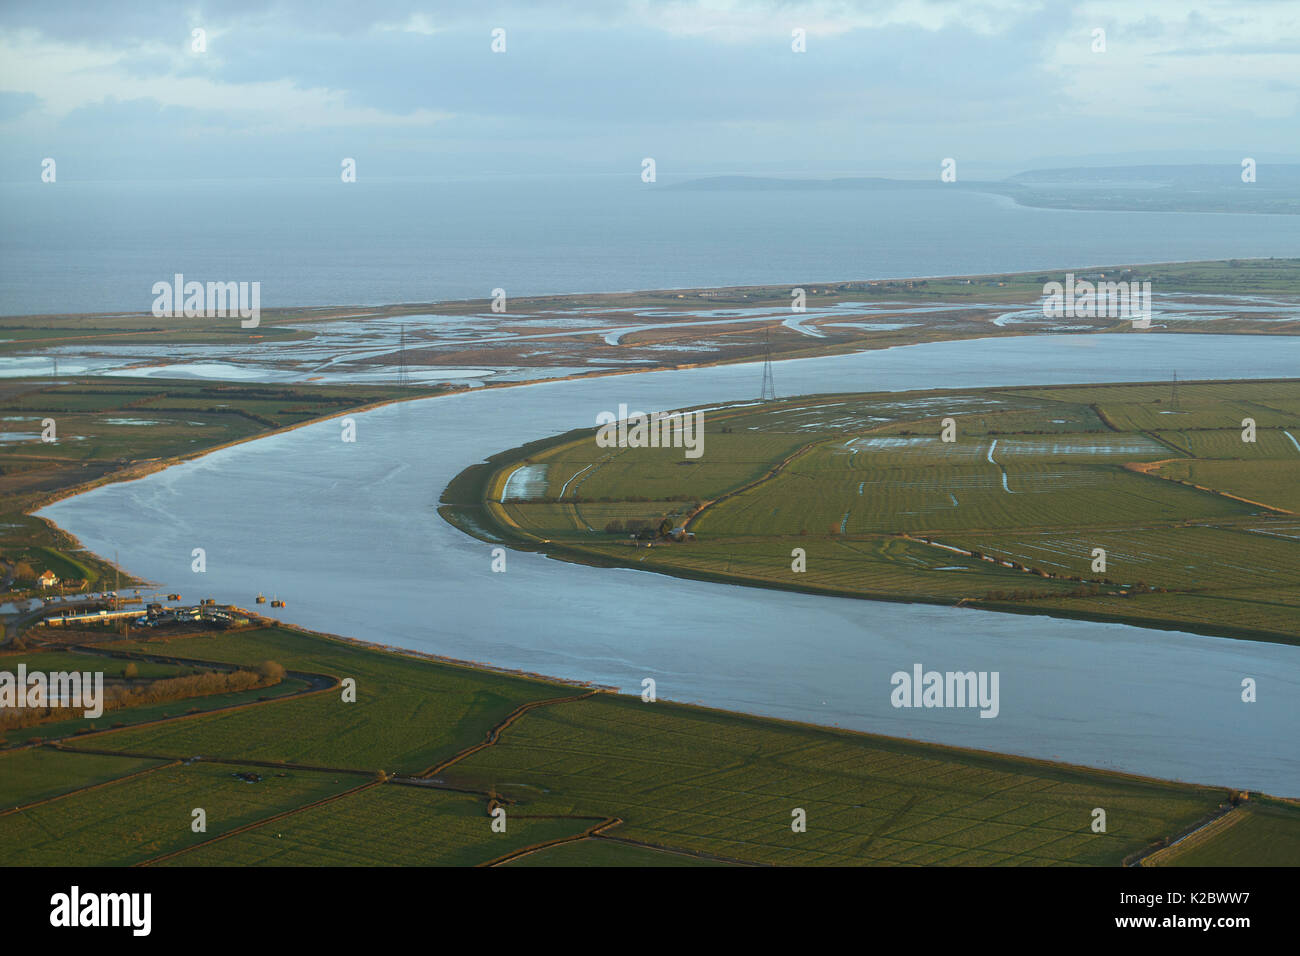 Aerial view of the River Parrett and Steart Marshes Wildfowl and Wetland Trust, Somerset, UK, February 2015.   This area has been allowed to flood by the WWT and the Environment Agency to create new salt marsh habitat and is an example of managed retreat. - Stock Image